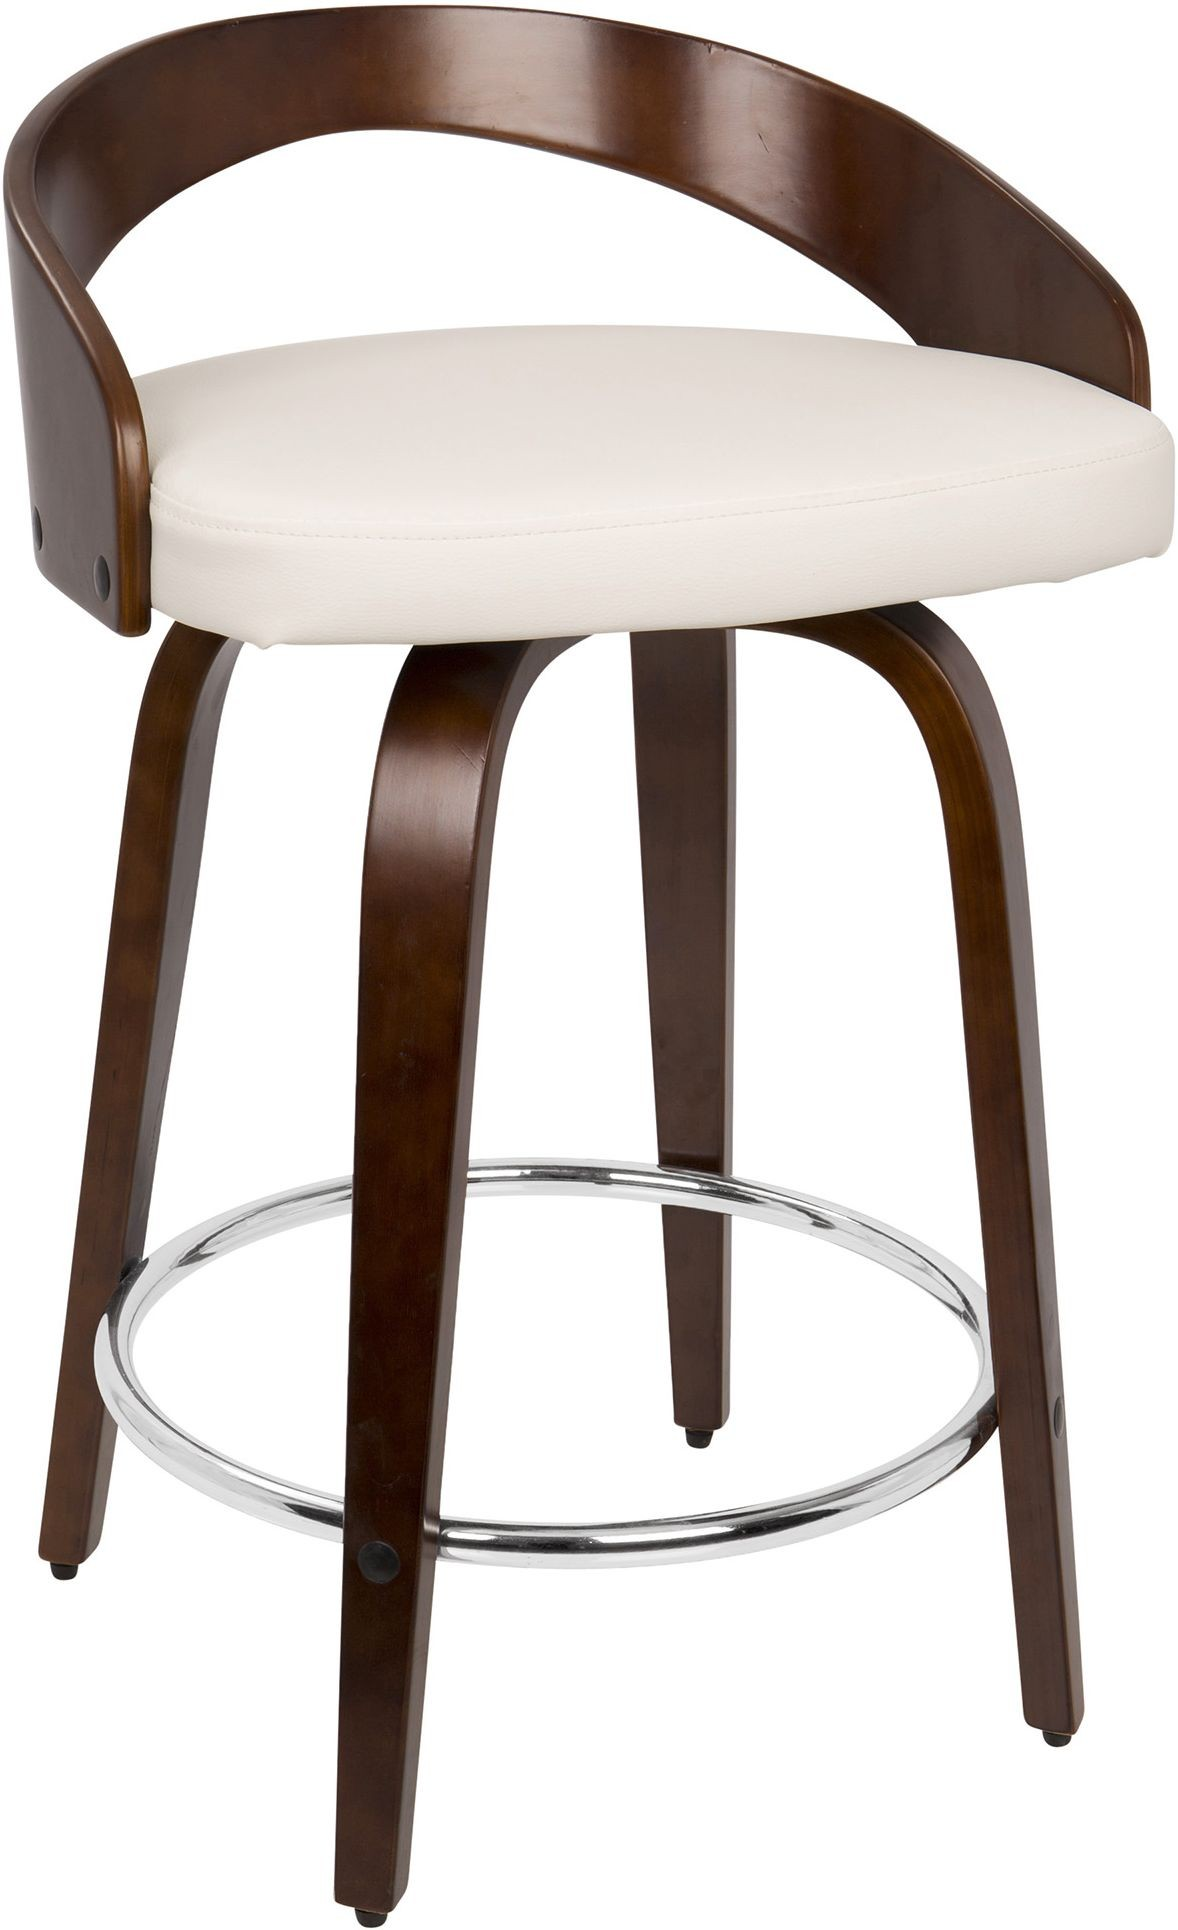 Grotto Brown And White Counter Stool Set Of 2 From